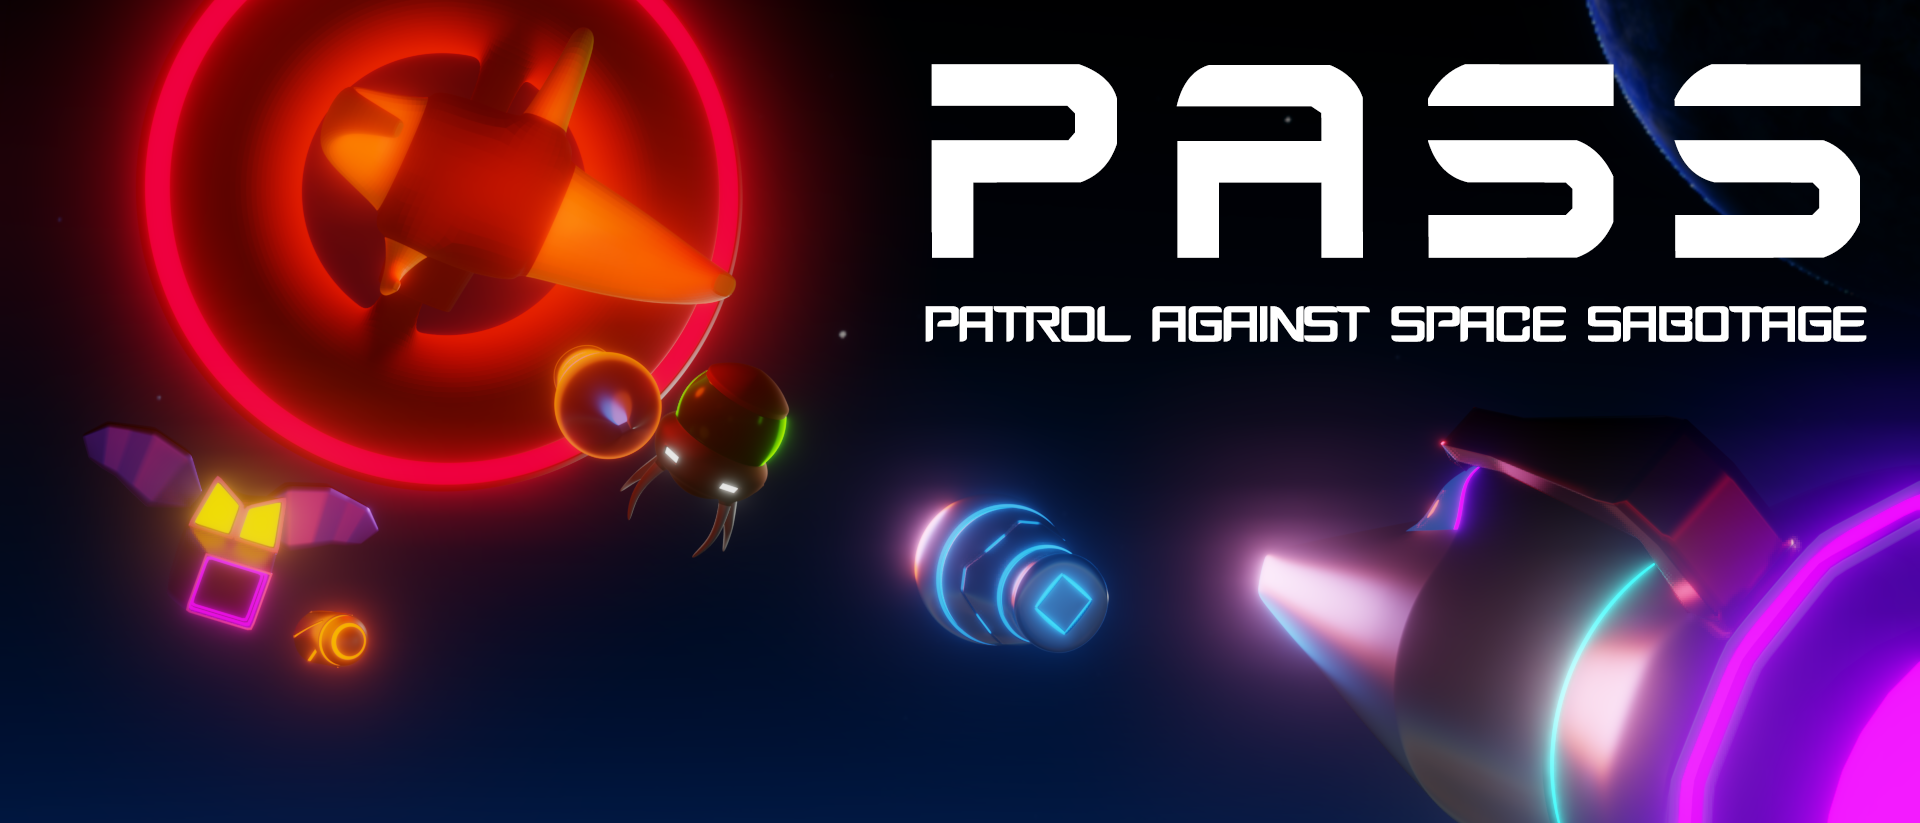 Patrol Against Space Sabotage